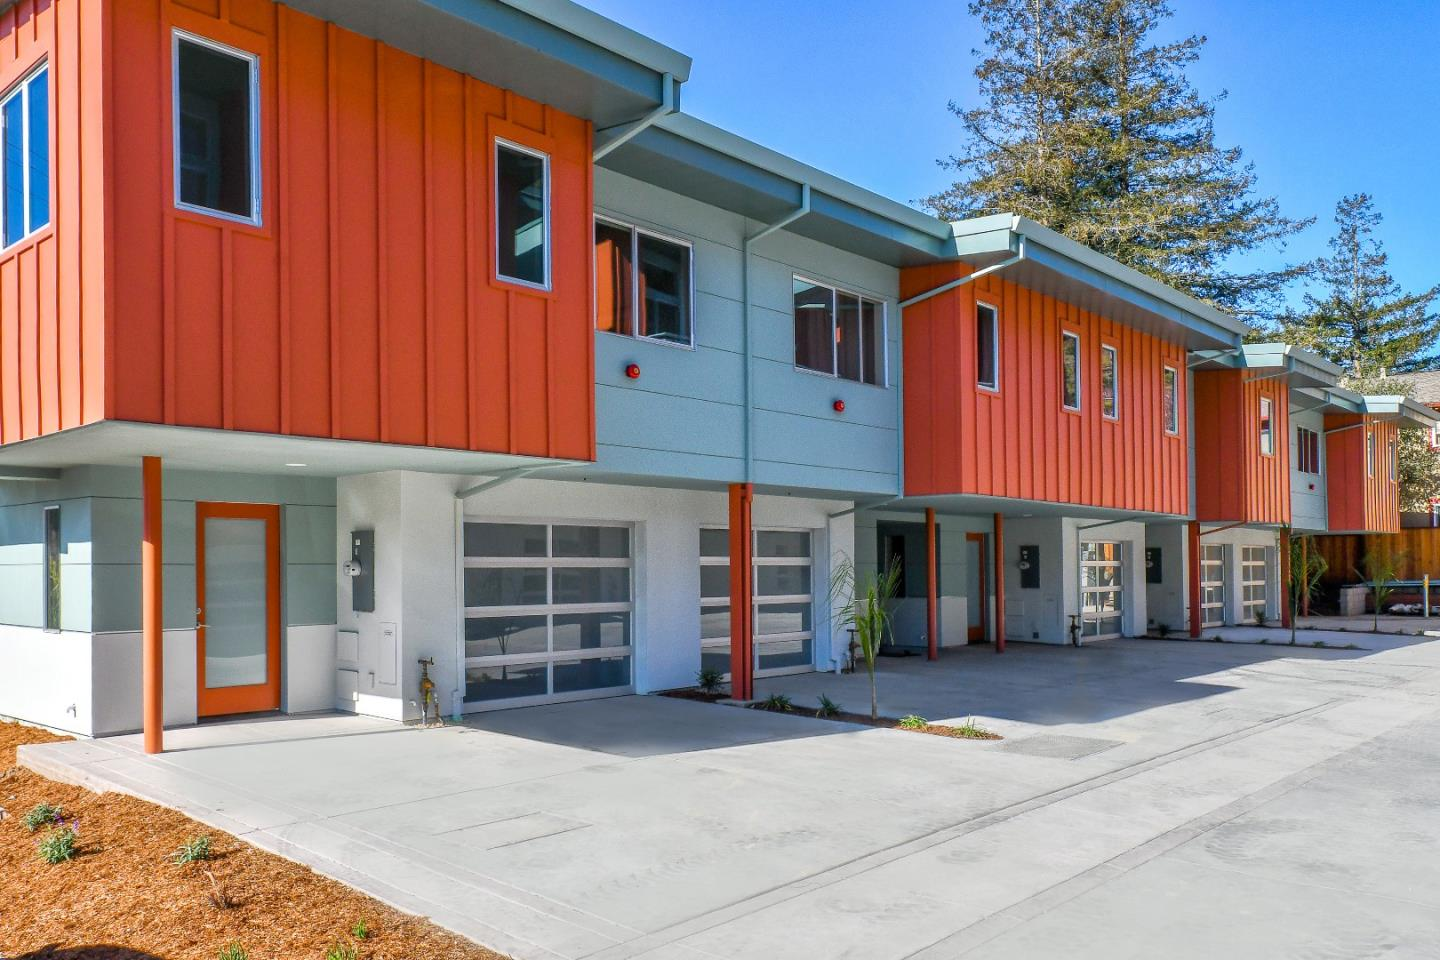 101 Jewell Street Unit 9 Santa Cruz, CA 95060 - MLS #: ML81695906